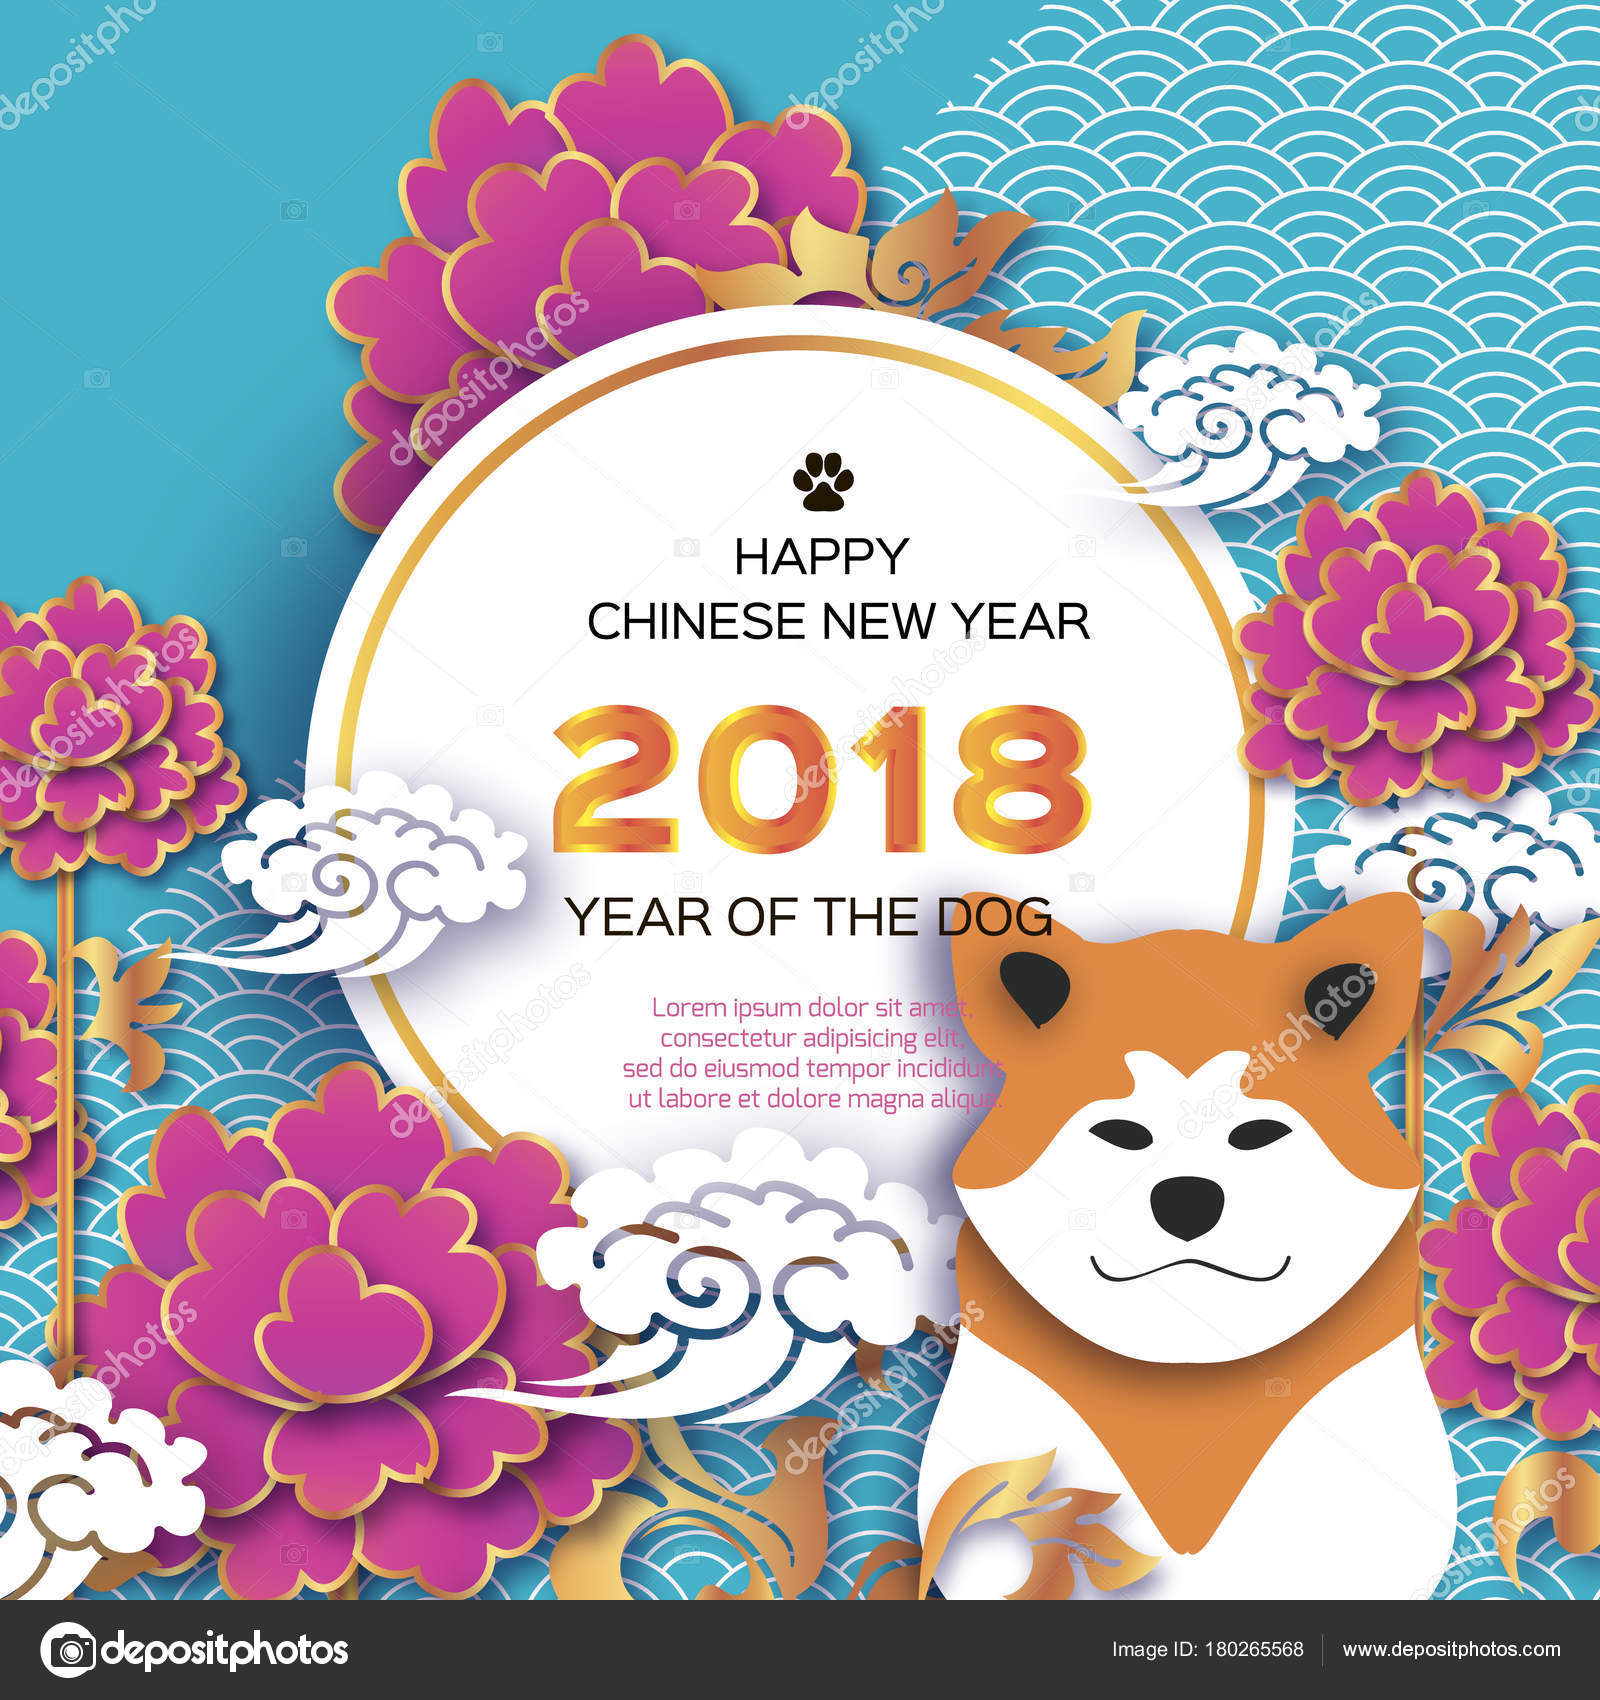 year of the dog 2018 happy chinese new year 2018 greeting card